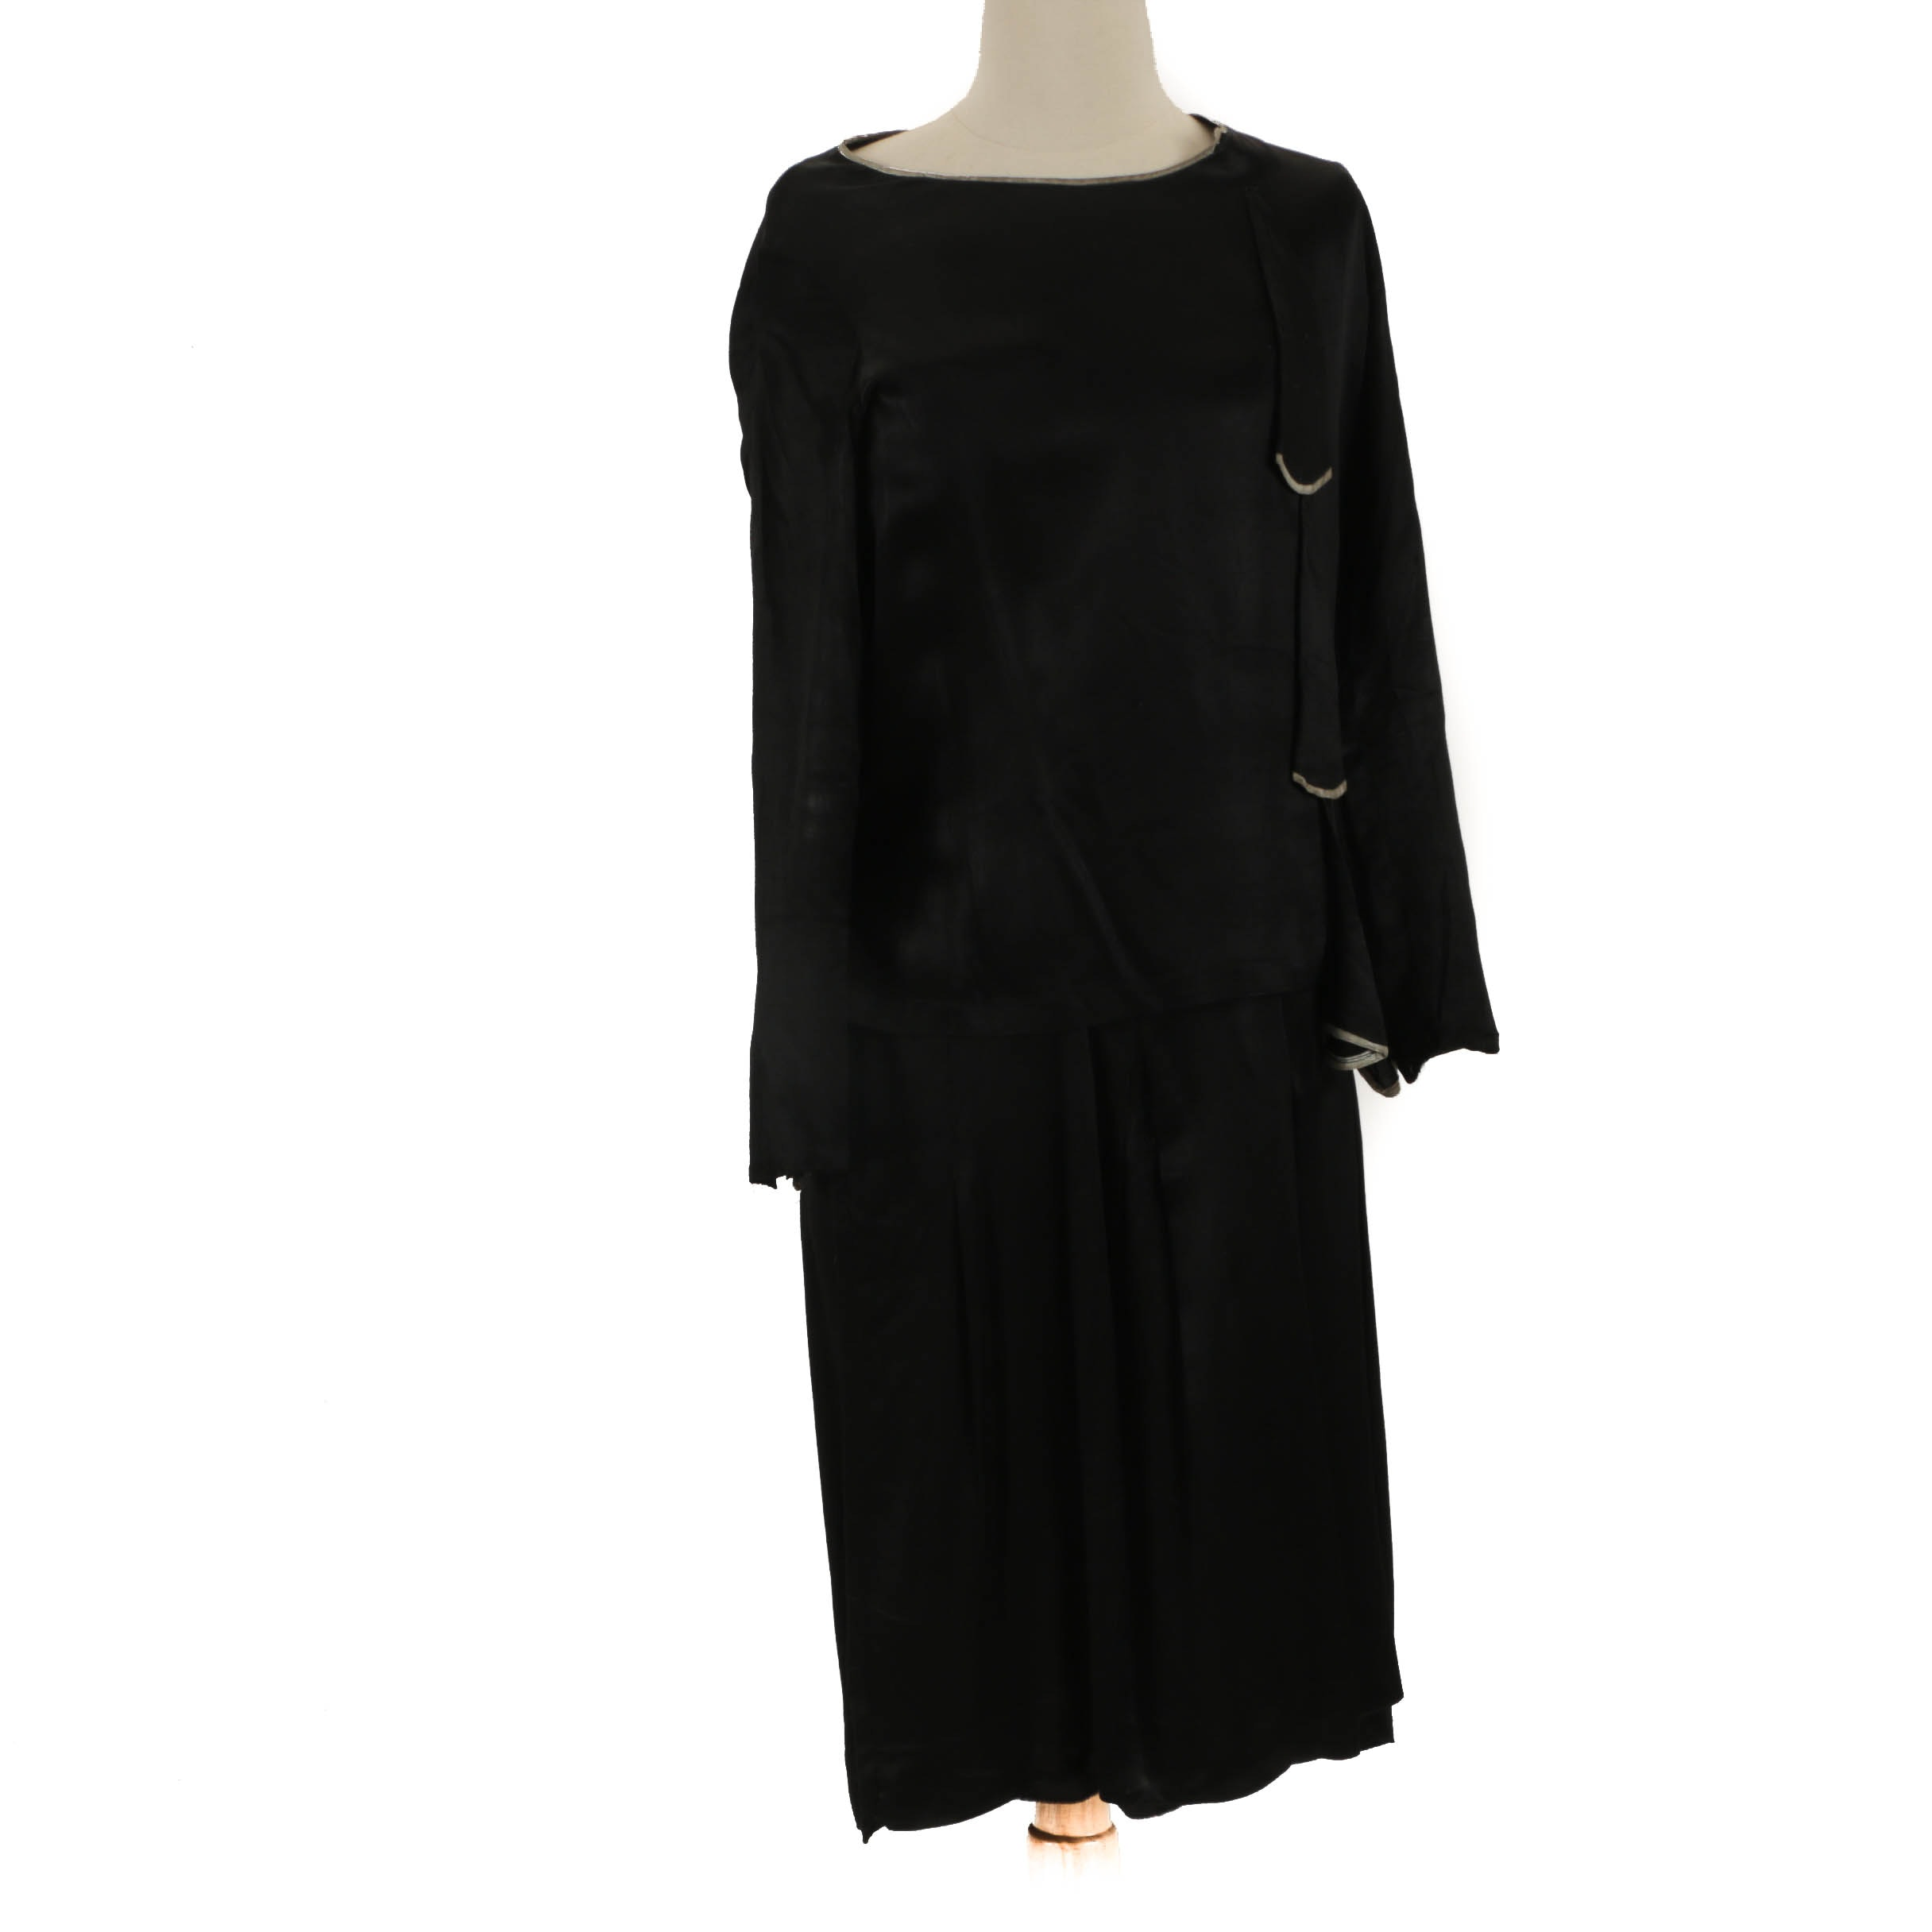 1920s-30s Vintage Black Satin Dress